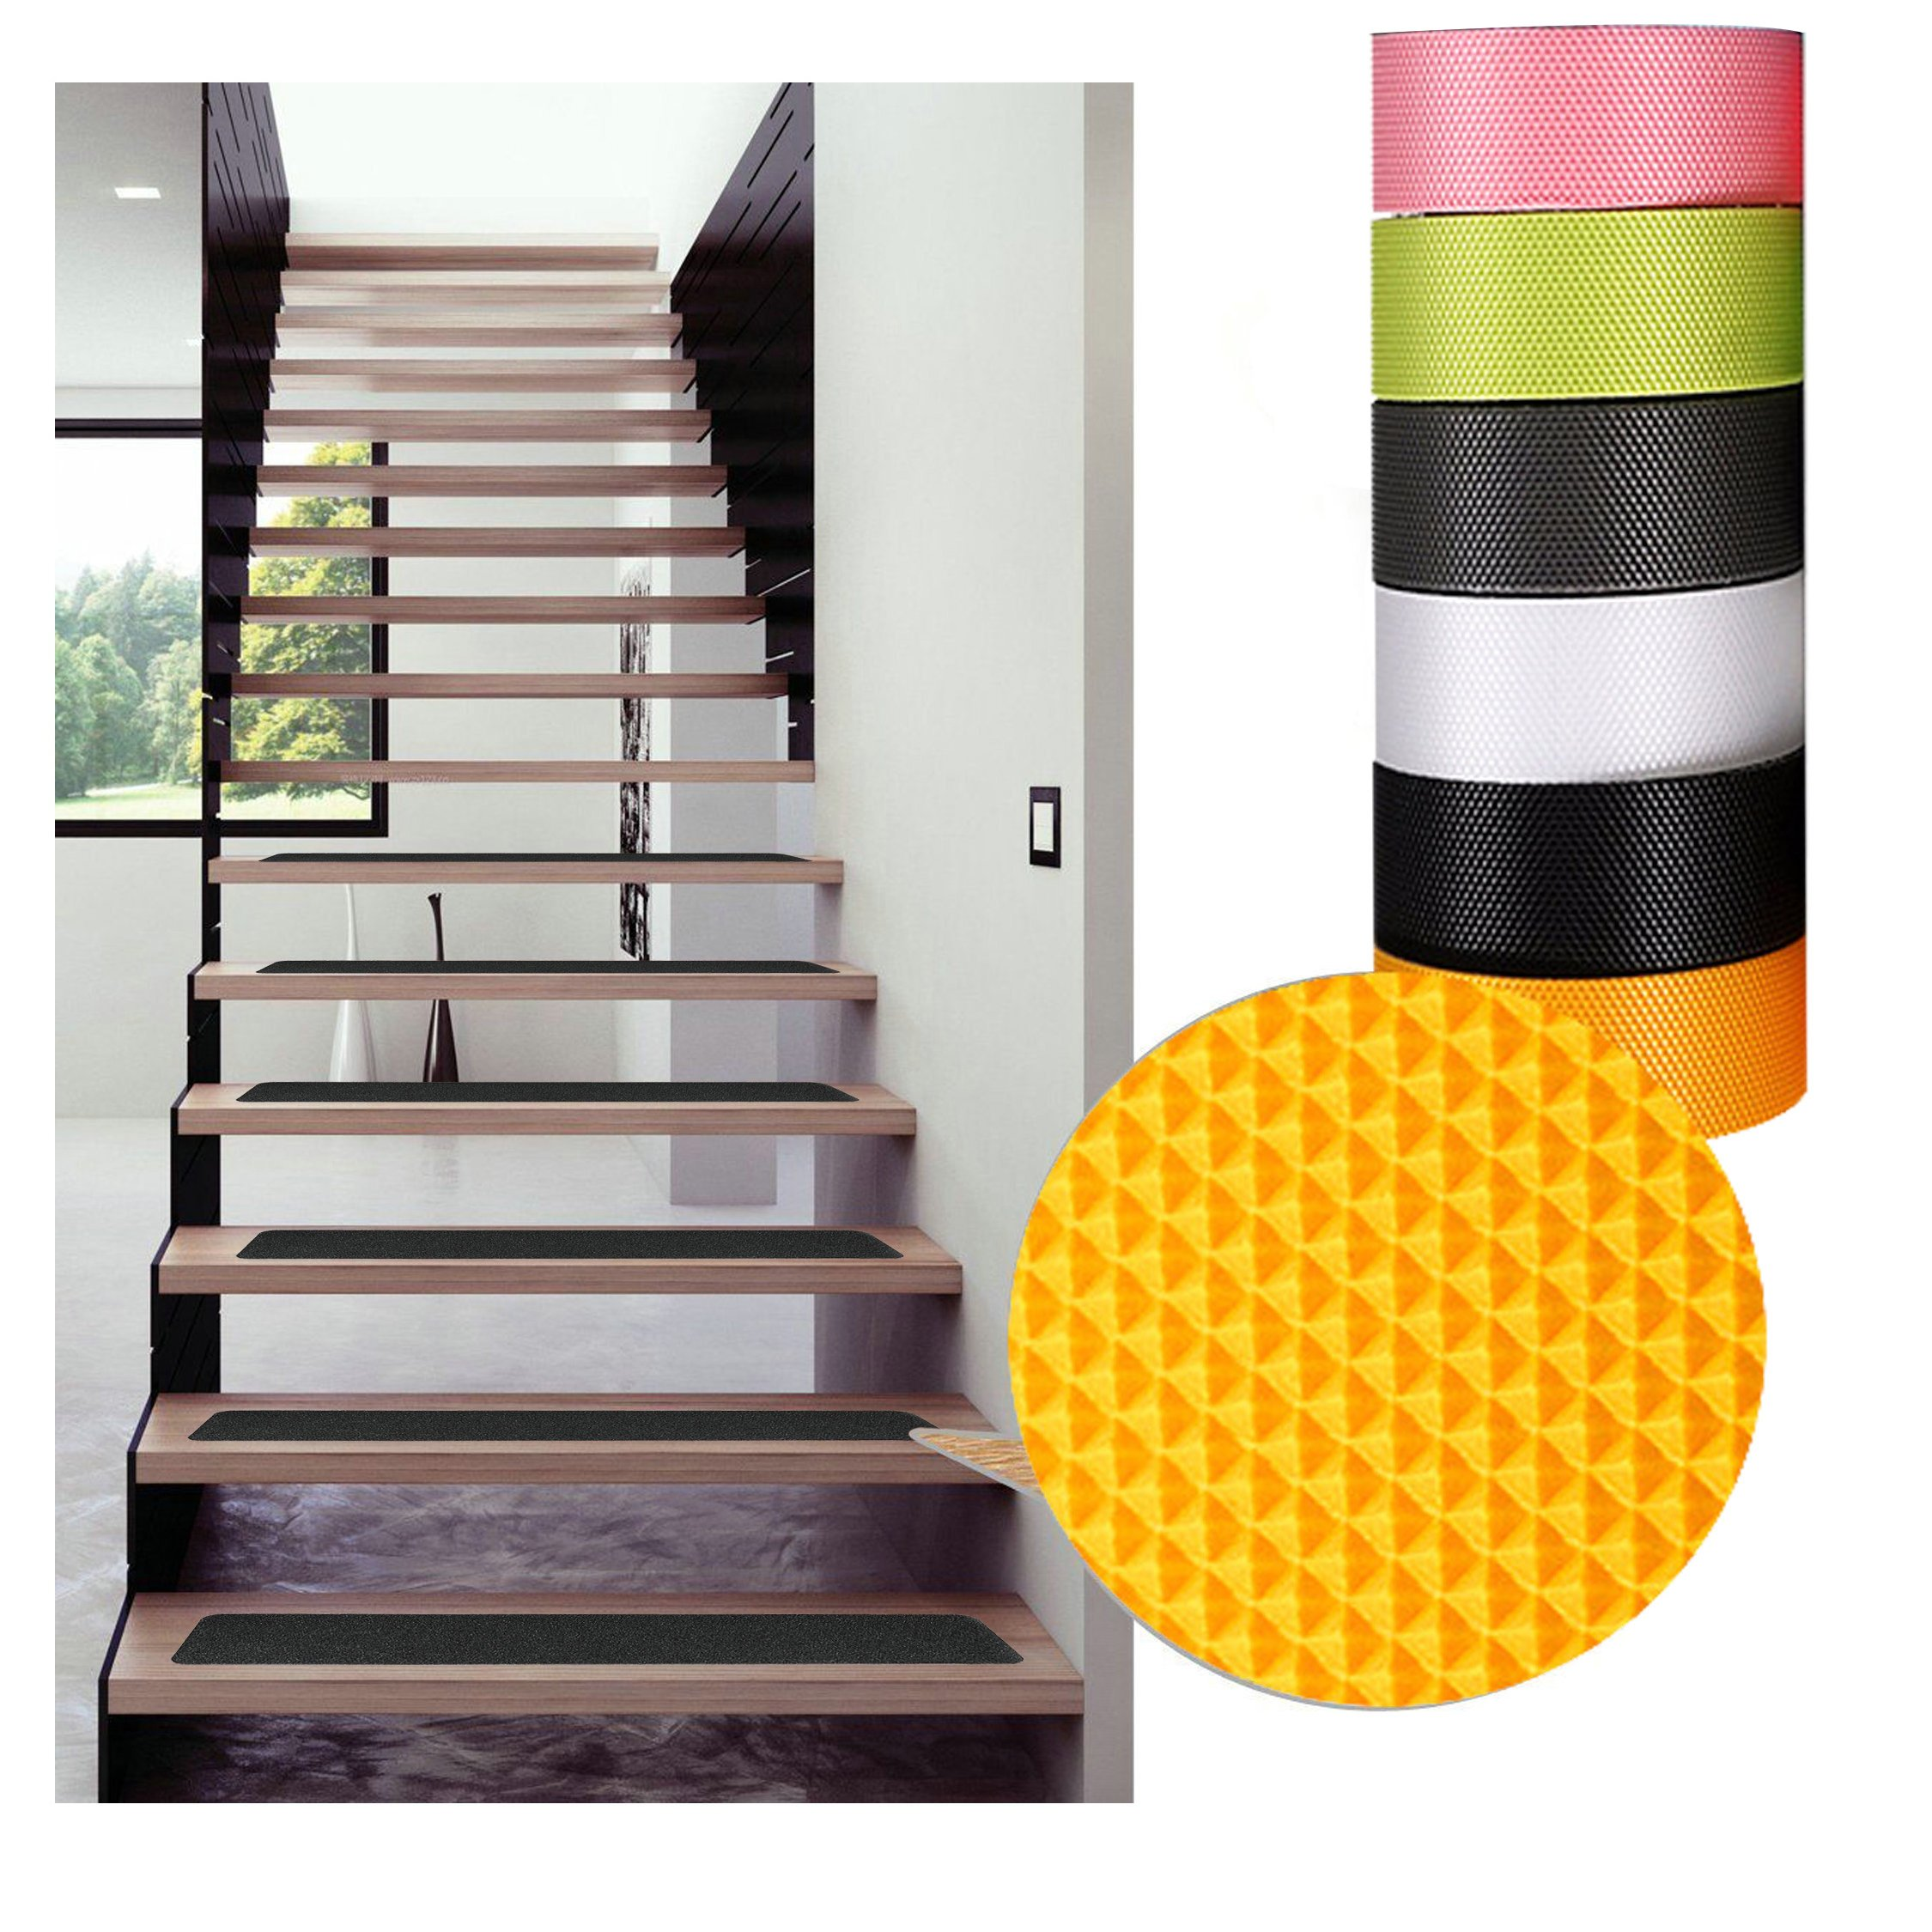 Black Anti Slip Safety Tape, Water Resistant High Traction Grip for Stairs, Steps, Boats, Garage, Ladders, Wear Resistant Strong Adhesive Rubberized Steady Treads Indoor Or Outdoor (2'' x16.4') by ZSAT (Image #5)